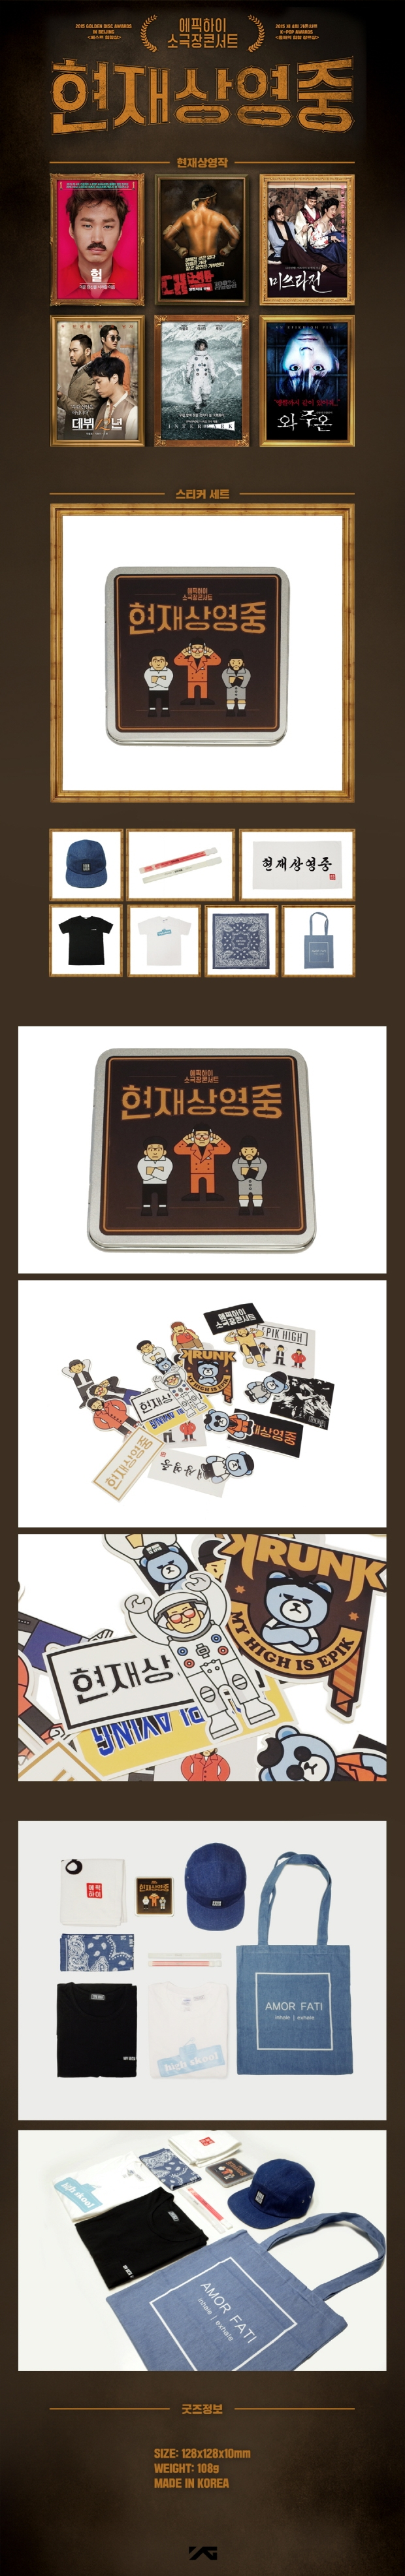 03_epikhigh_sticker_01